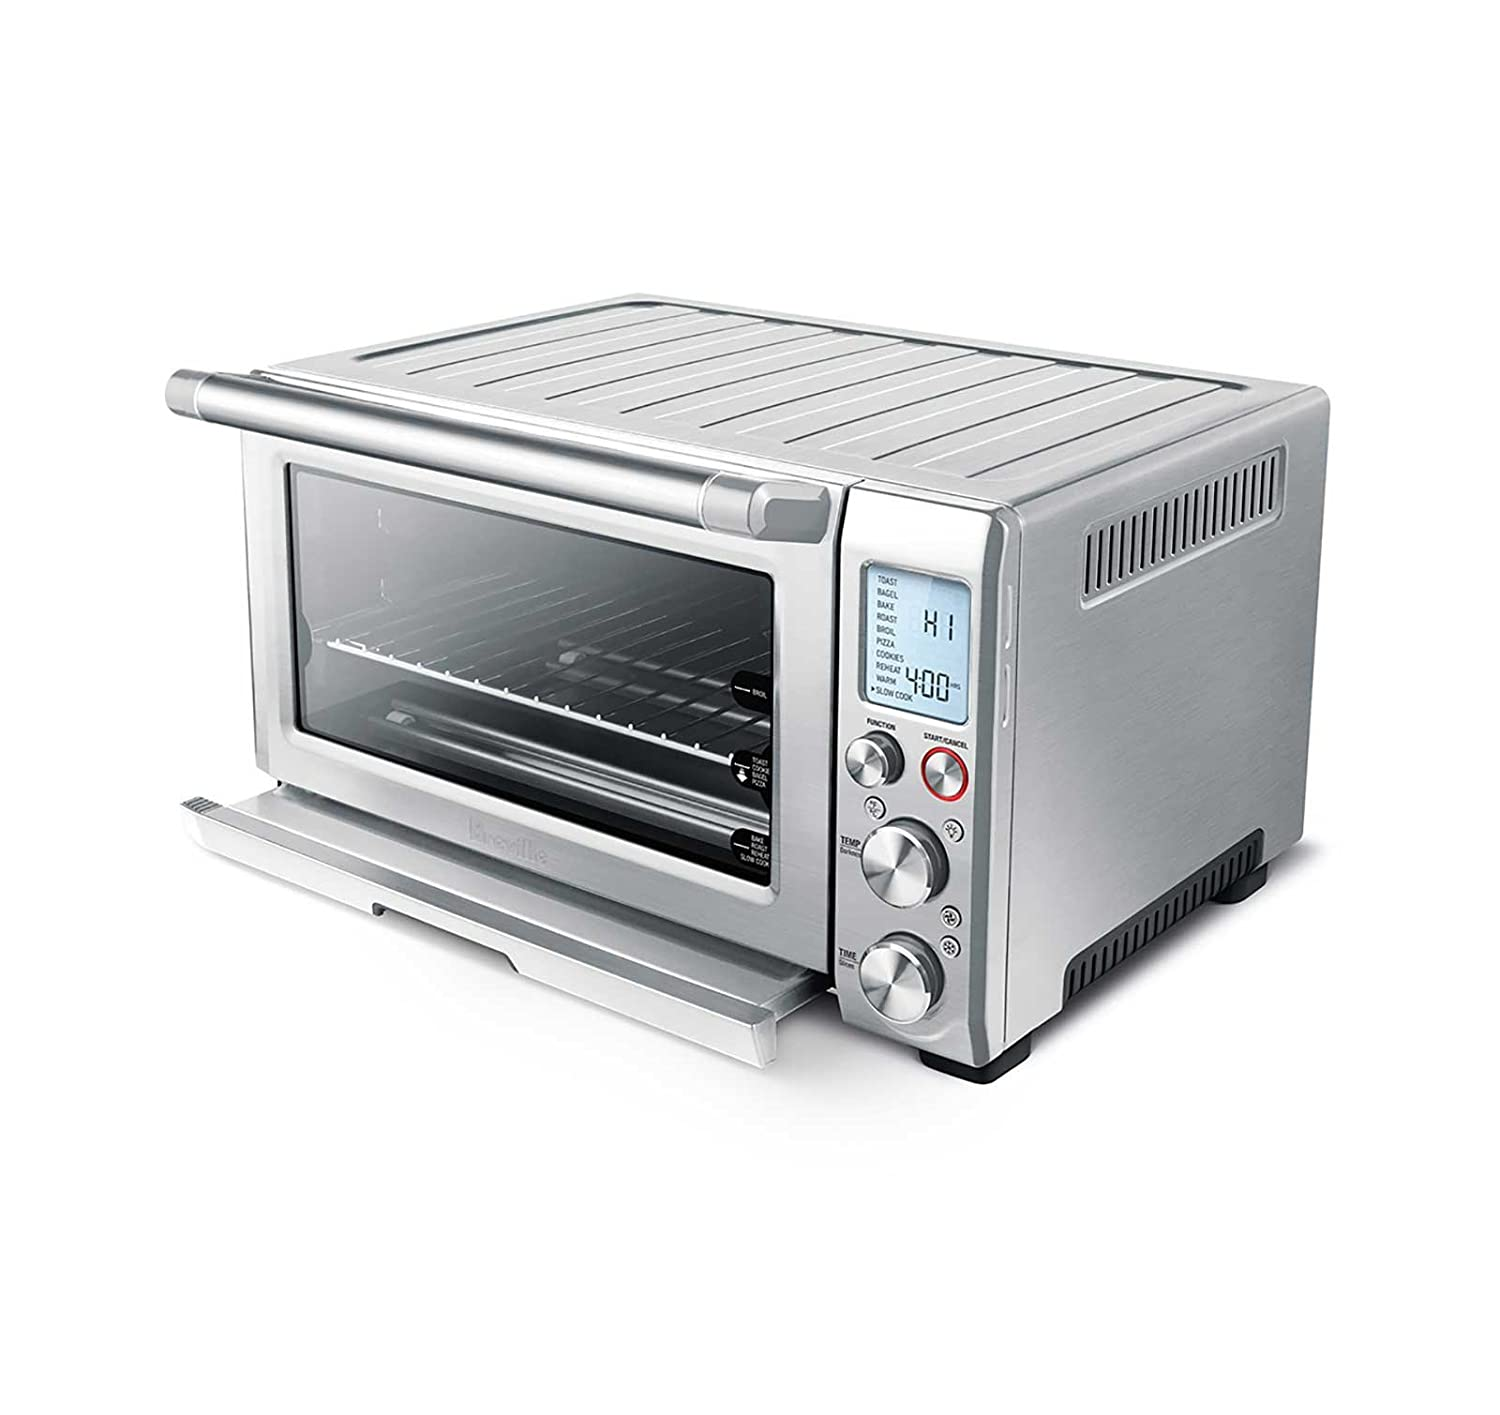 Breville BOV845BSS Smart Oven Pro 1800 W Convection Toaster Oven with Element IQ, Brushed Stainless S